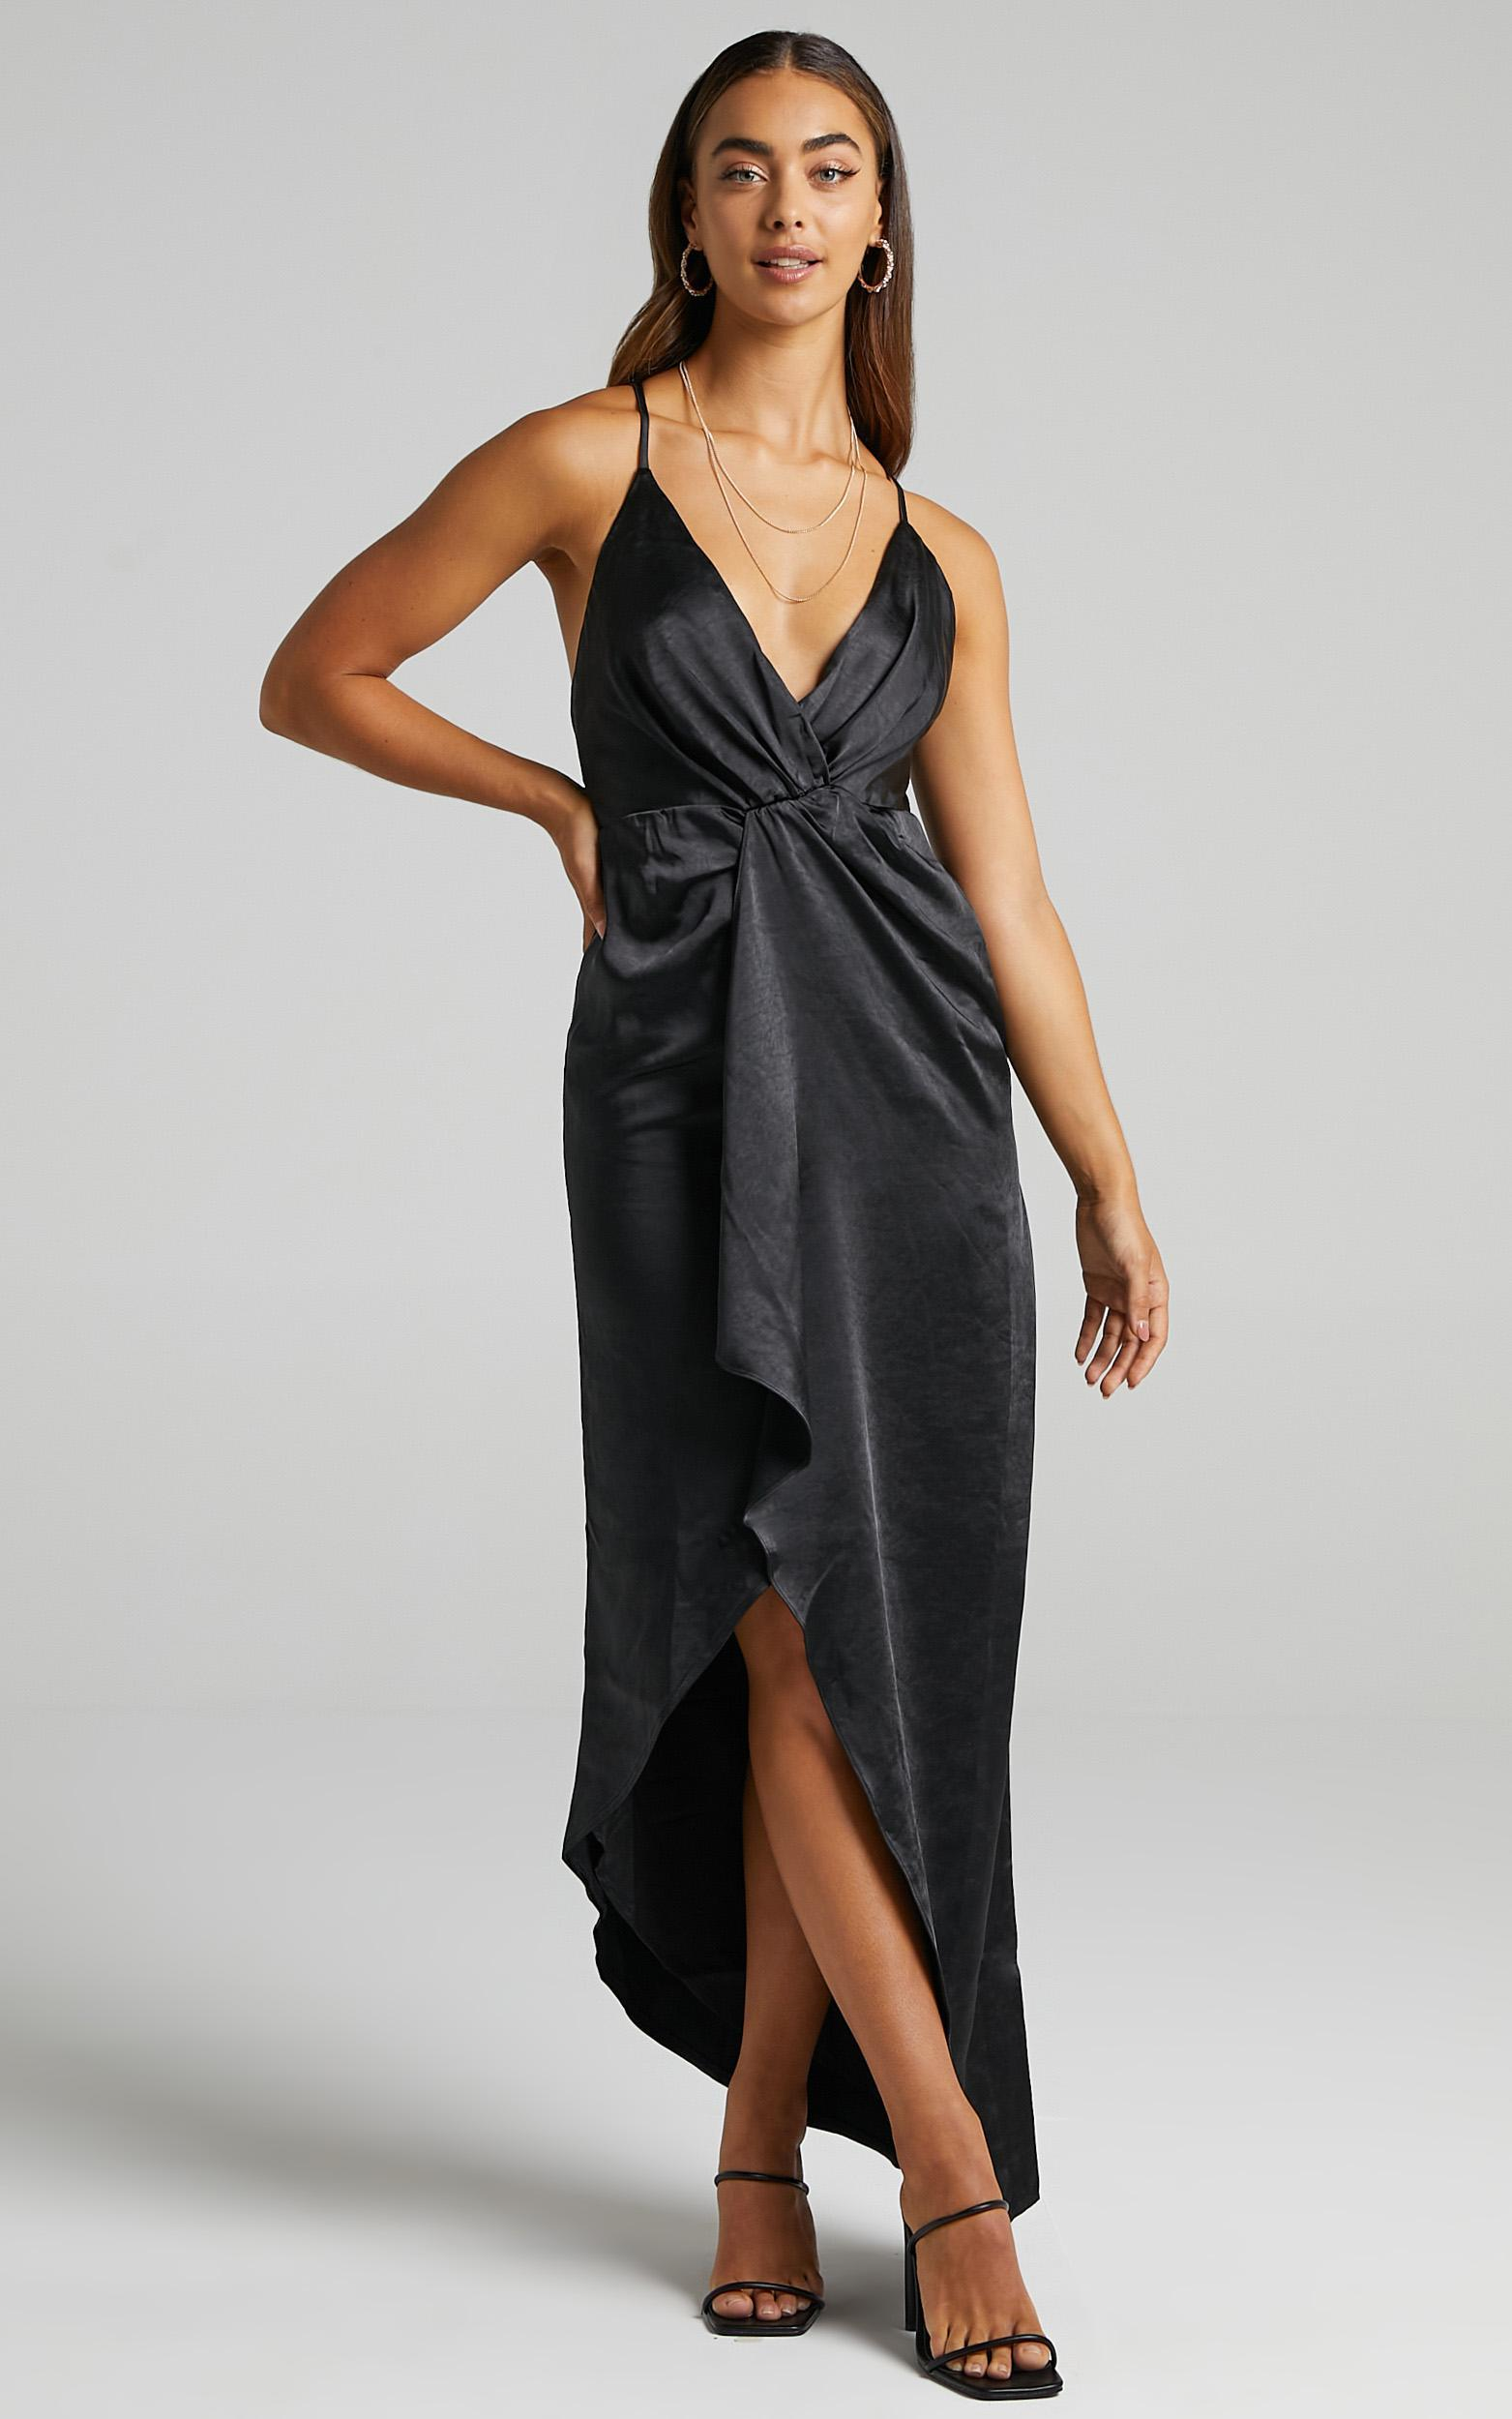 Jayne Twist Front Maxi Dress in Black Satin - 6 (XS), Black, hi-res image number null